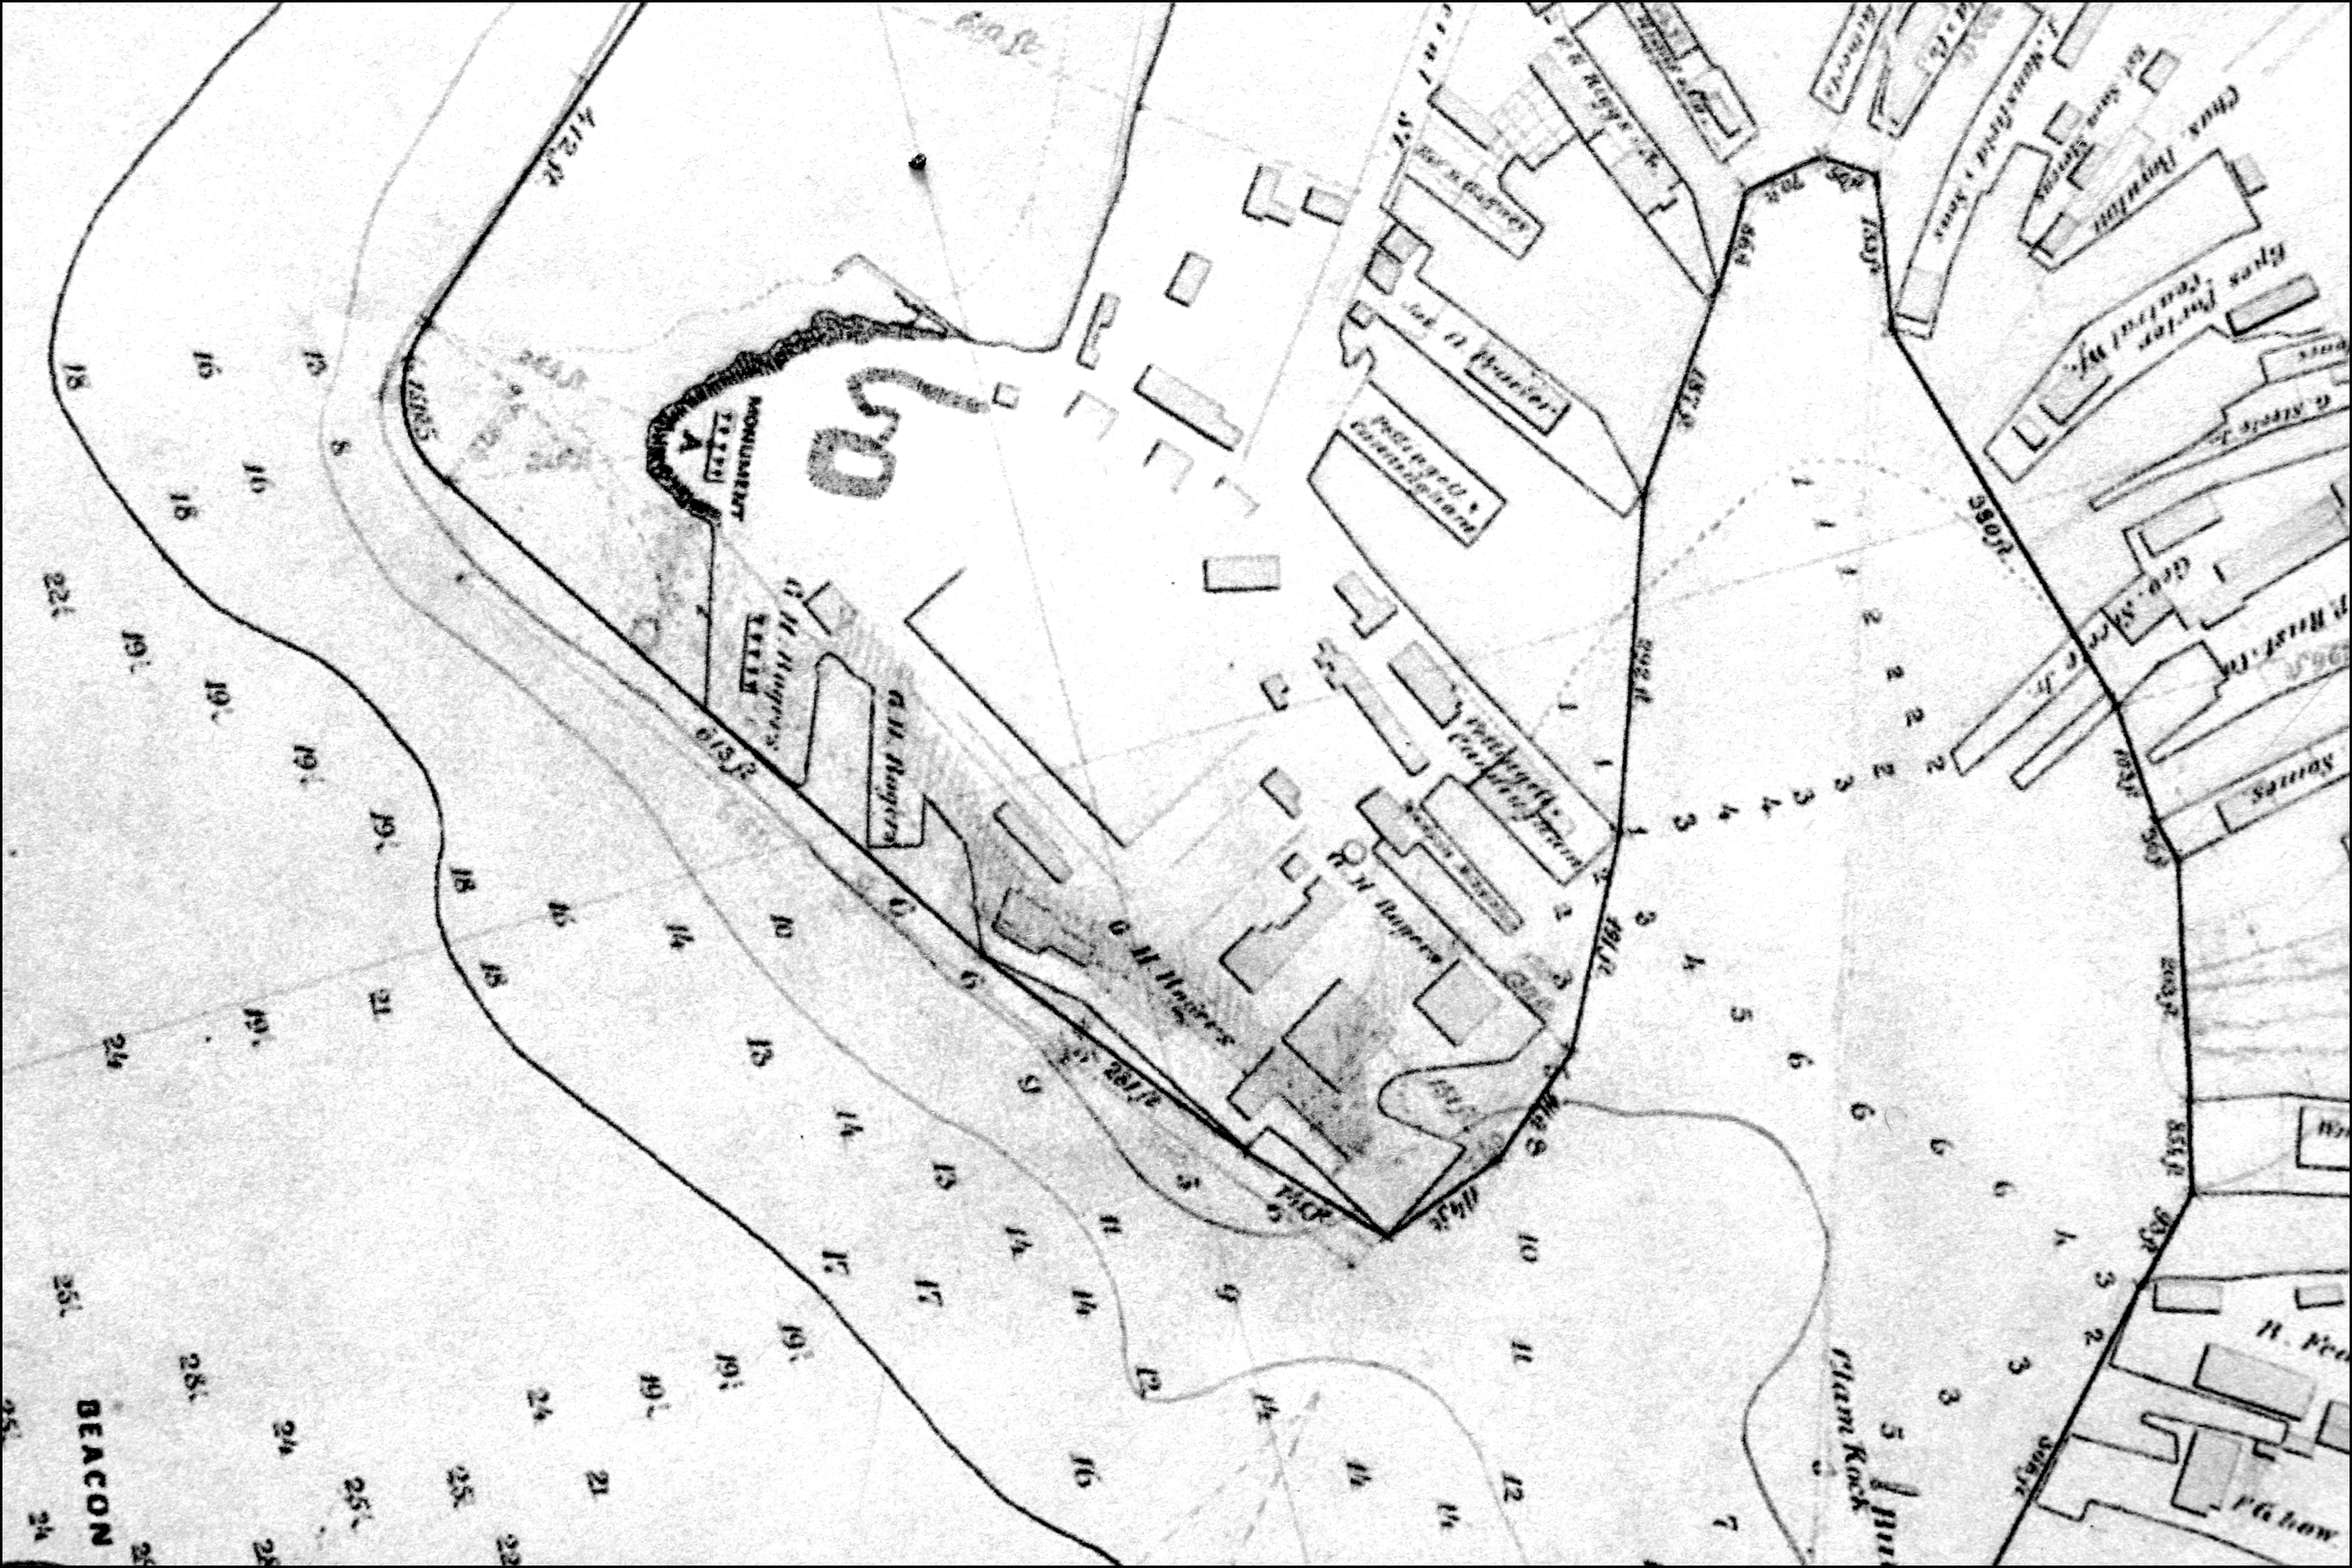 Fitz henry lane ten pound island gloucester 1850s inv 17 detail of 1865 gloucester harbor commissioners map showing wharf limits nvjuhfo Choice Image